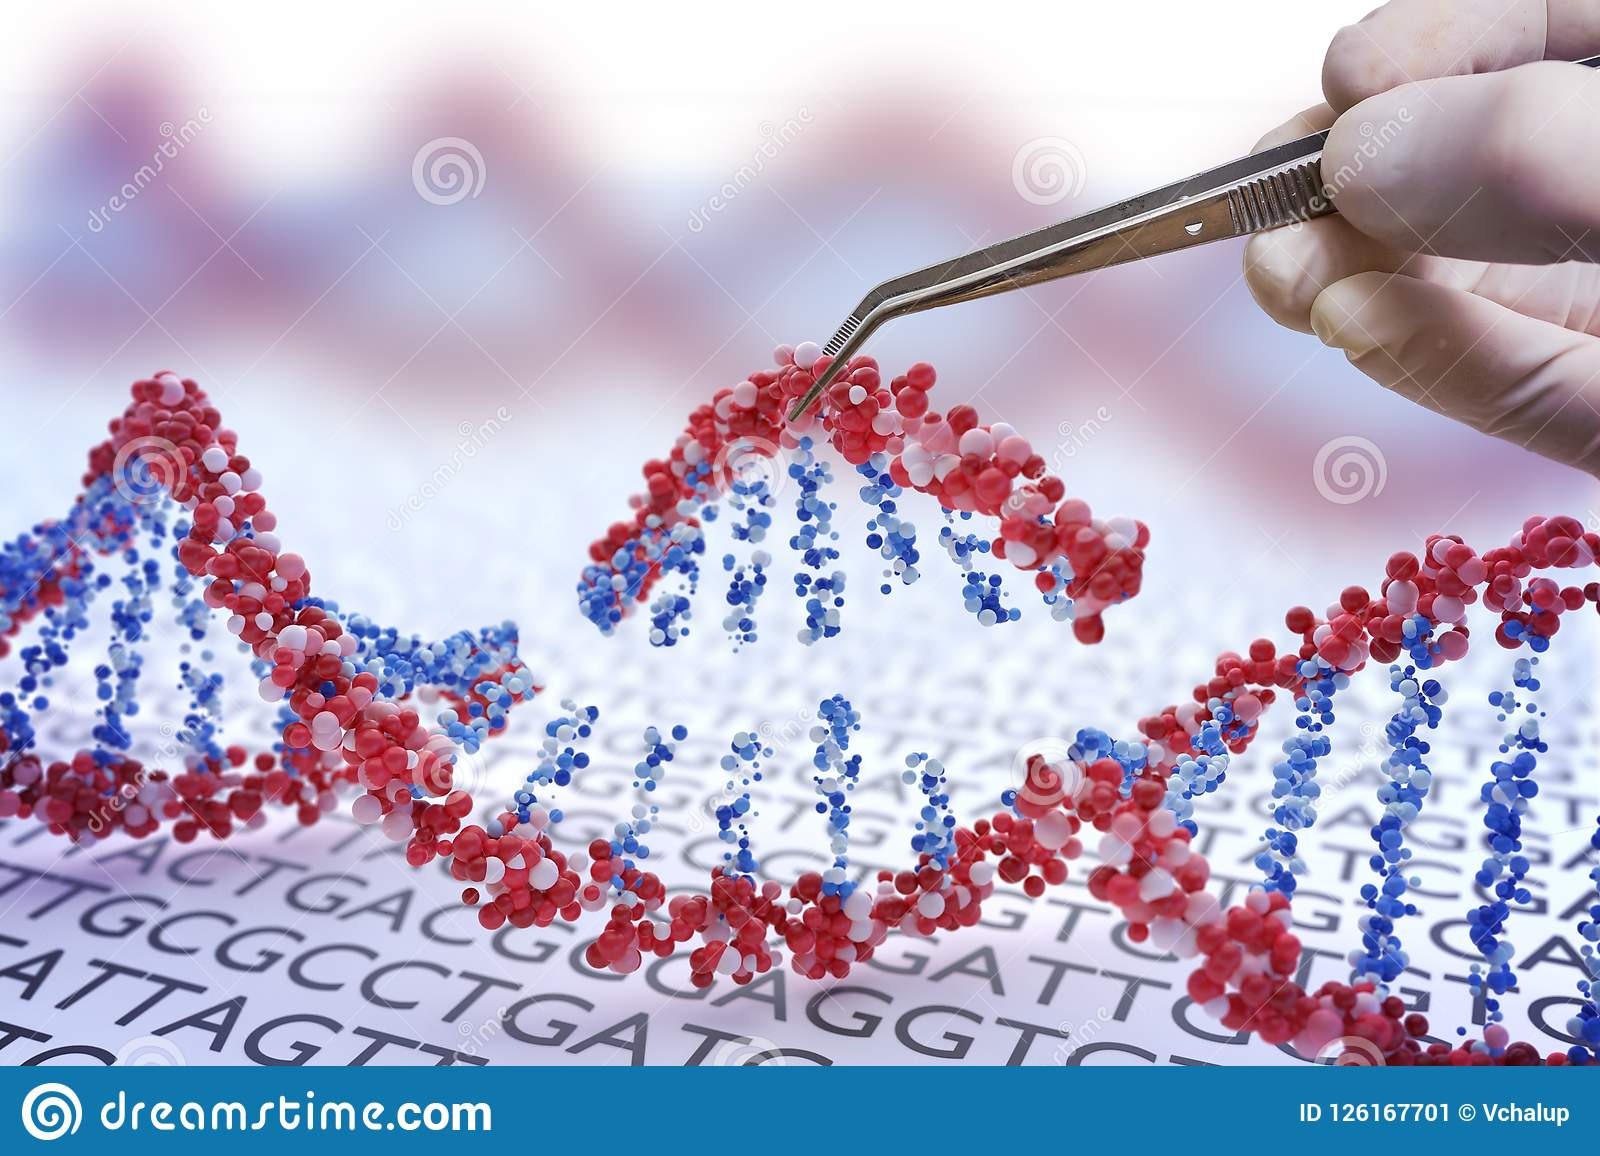 Genetic engineering, GMO and Gene manipulation concept. Hand is inserting sequence of DNA. 3D illustration of DNA